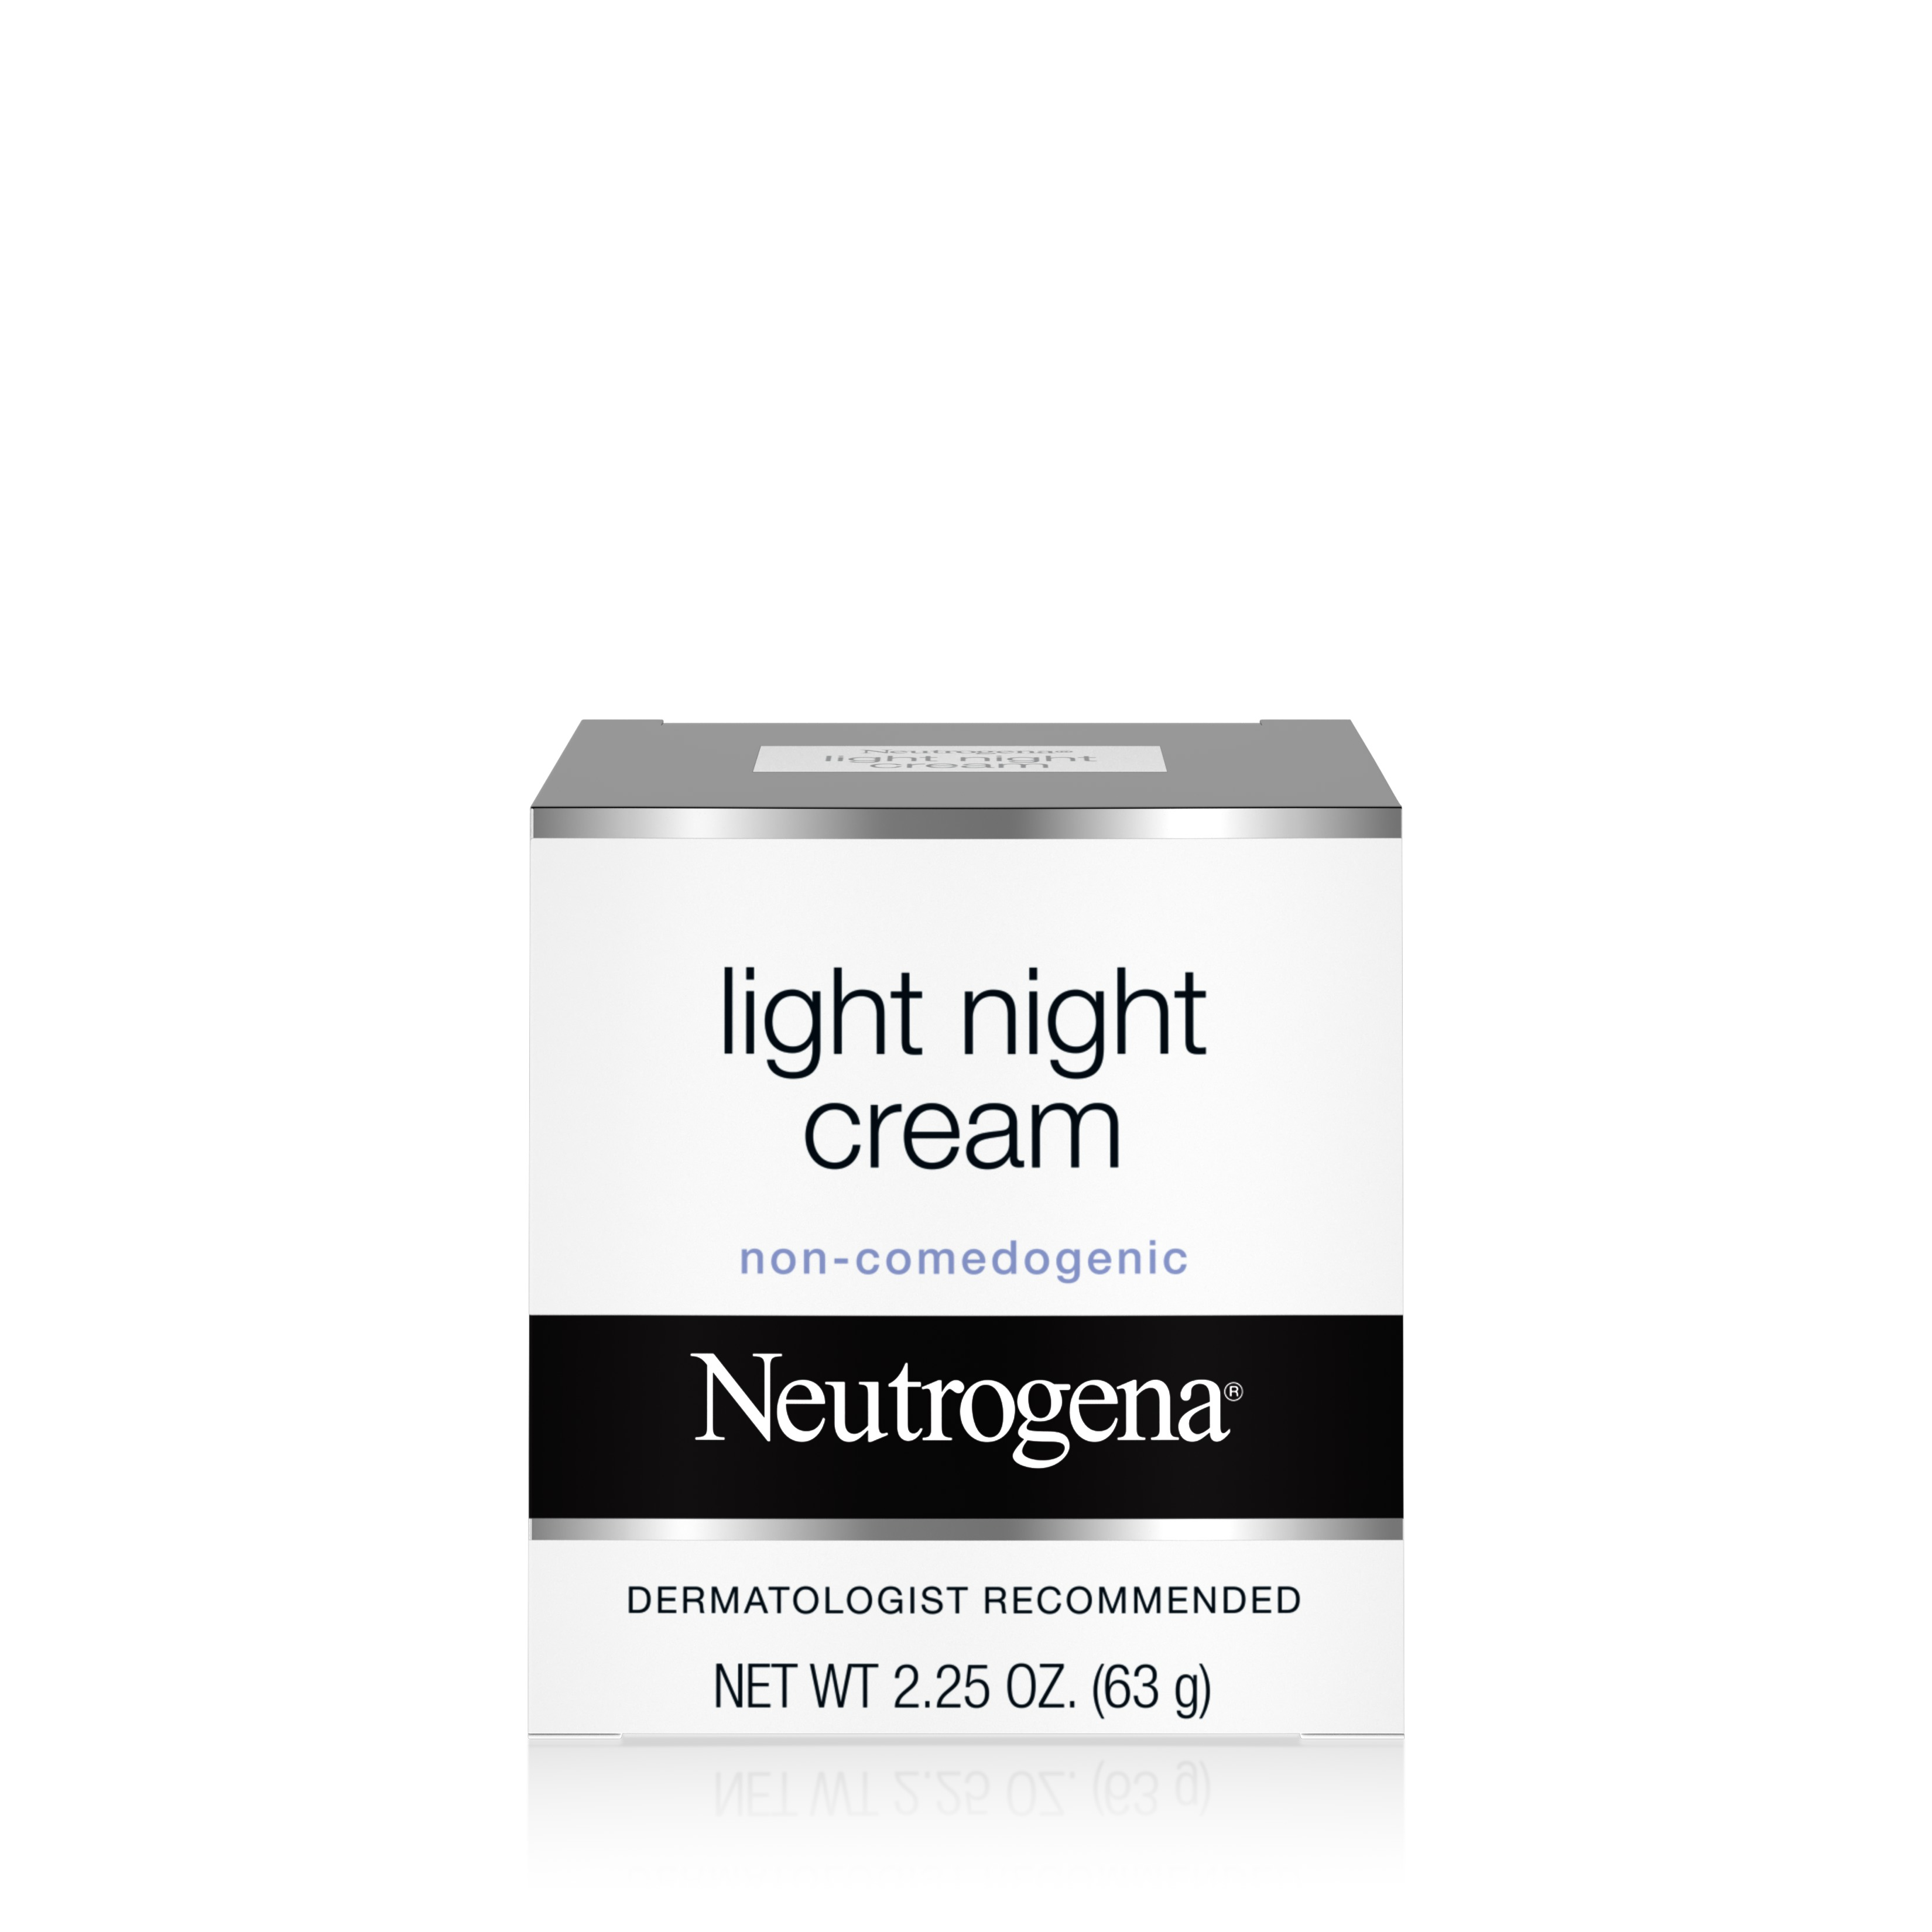 Neutrogena Light Facial Night Cream, 2.25 Oz. - Walmart.com